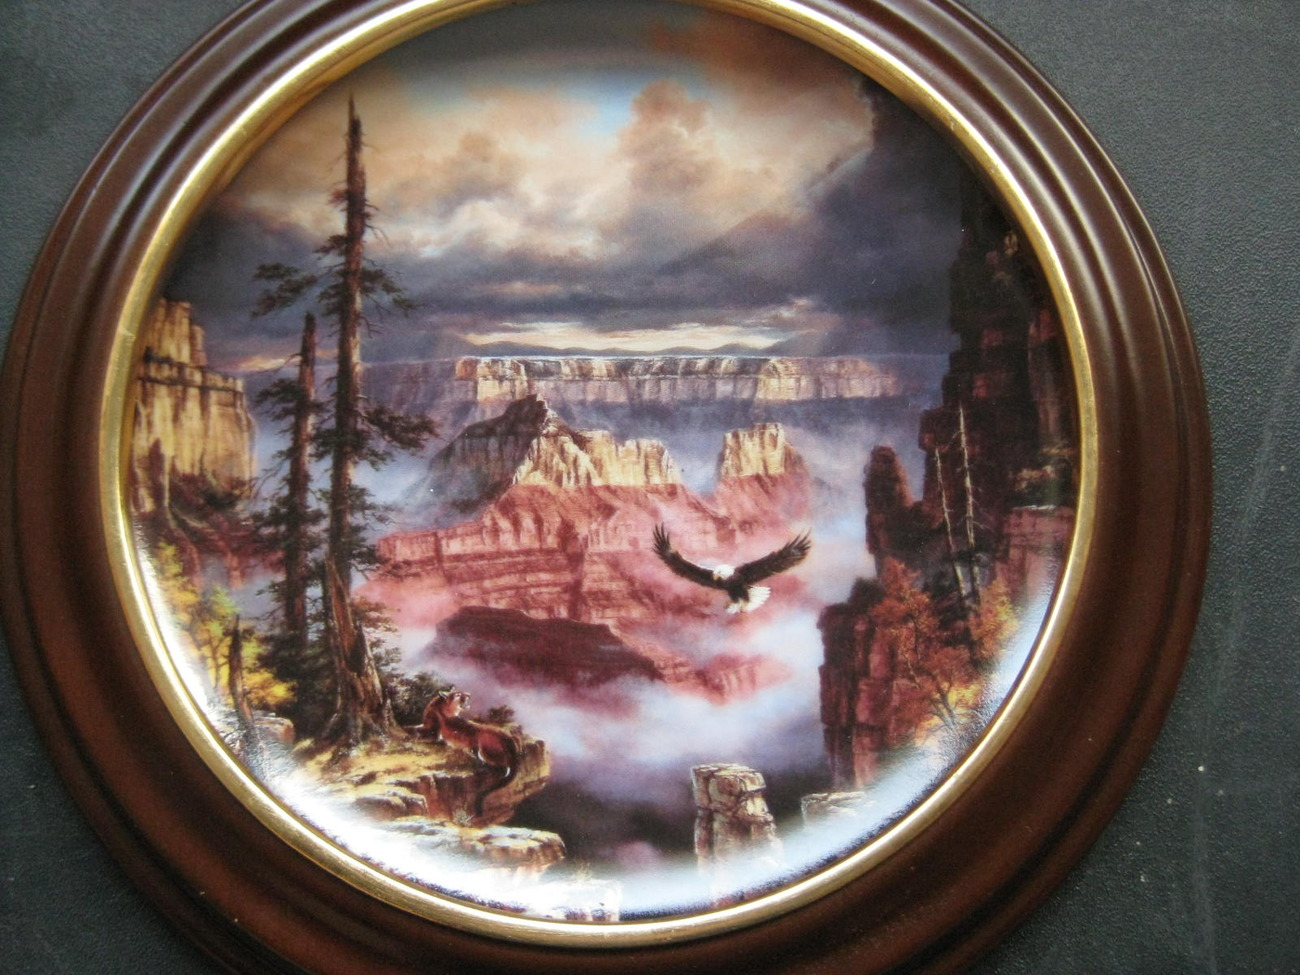 Framed Plate - WHERE EAGLES SOAR featuring the GRAND CANYON - Danbury Mint image 2